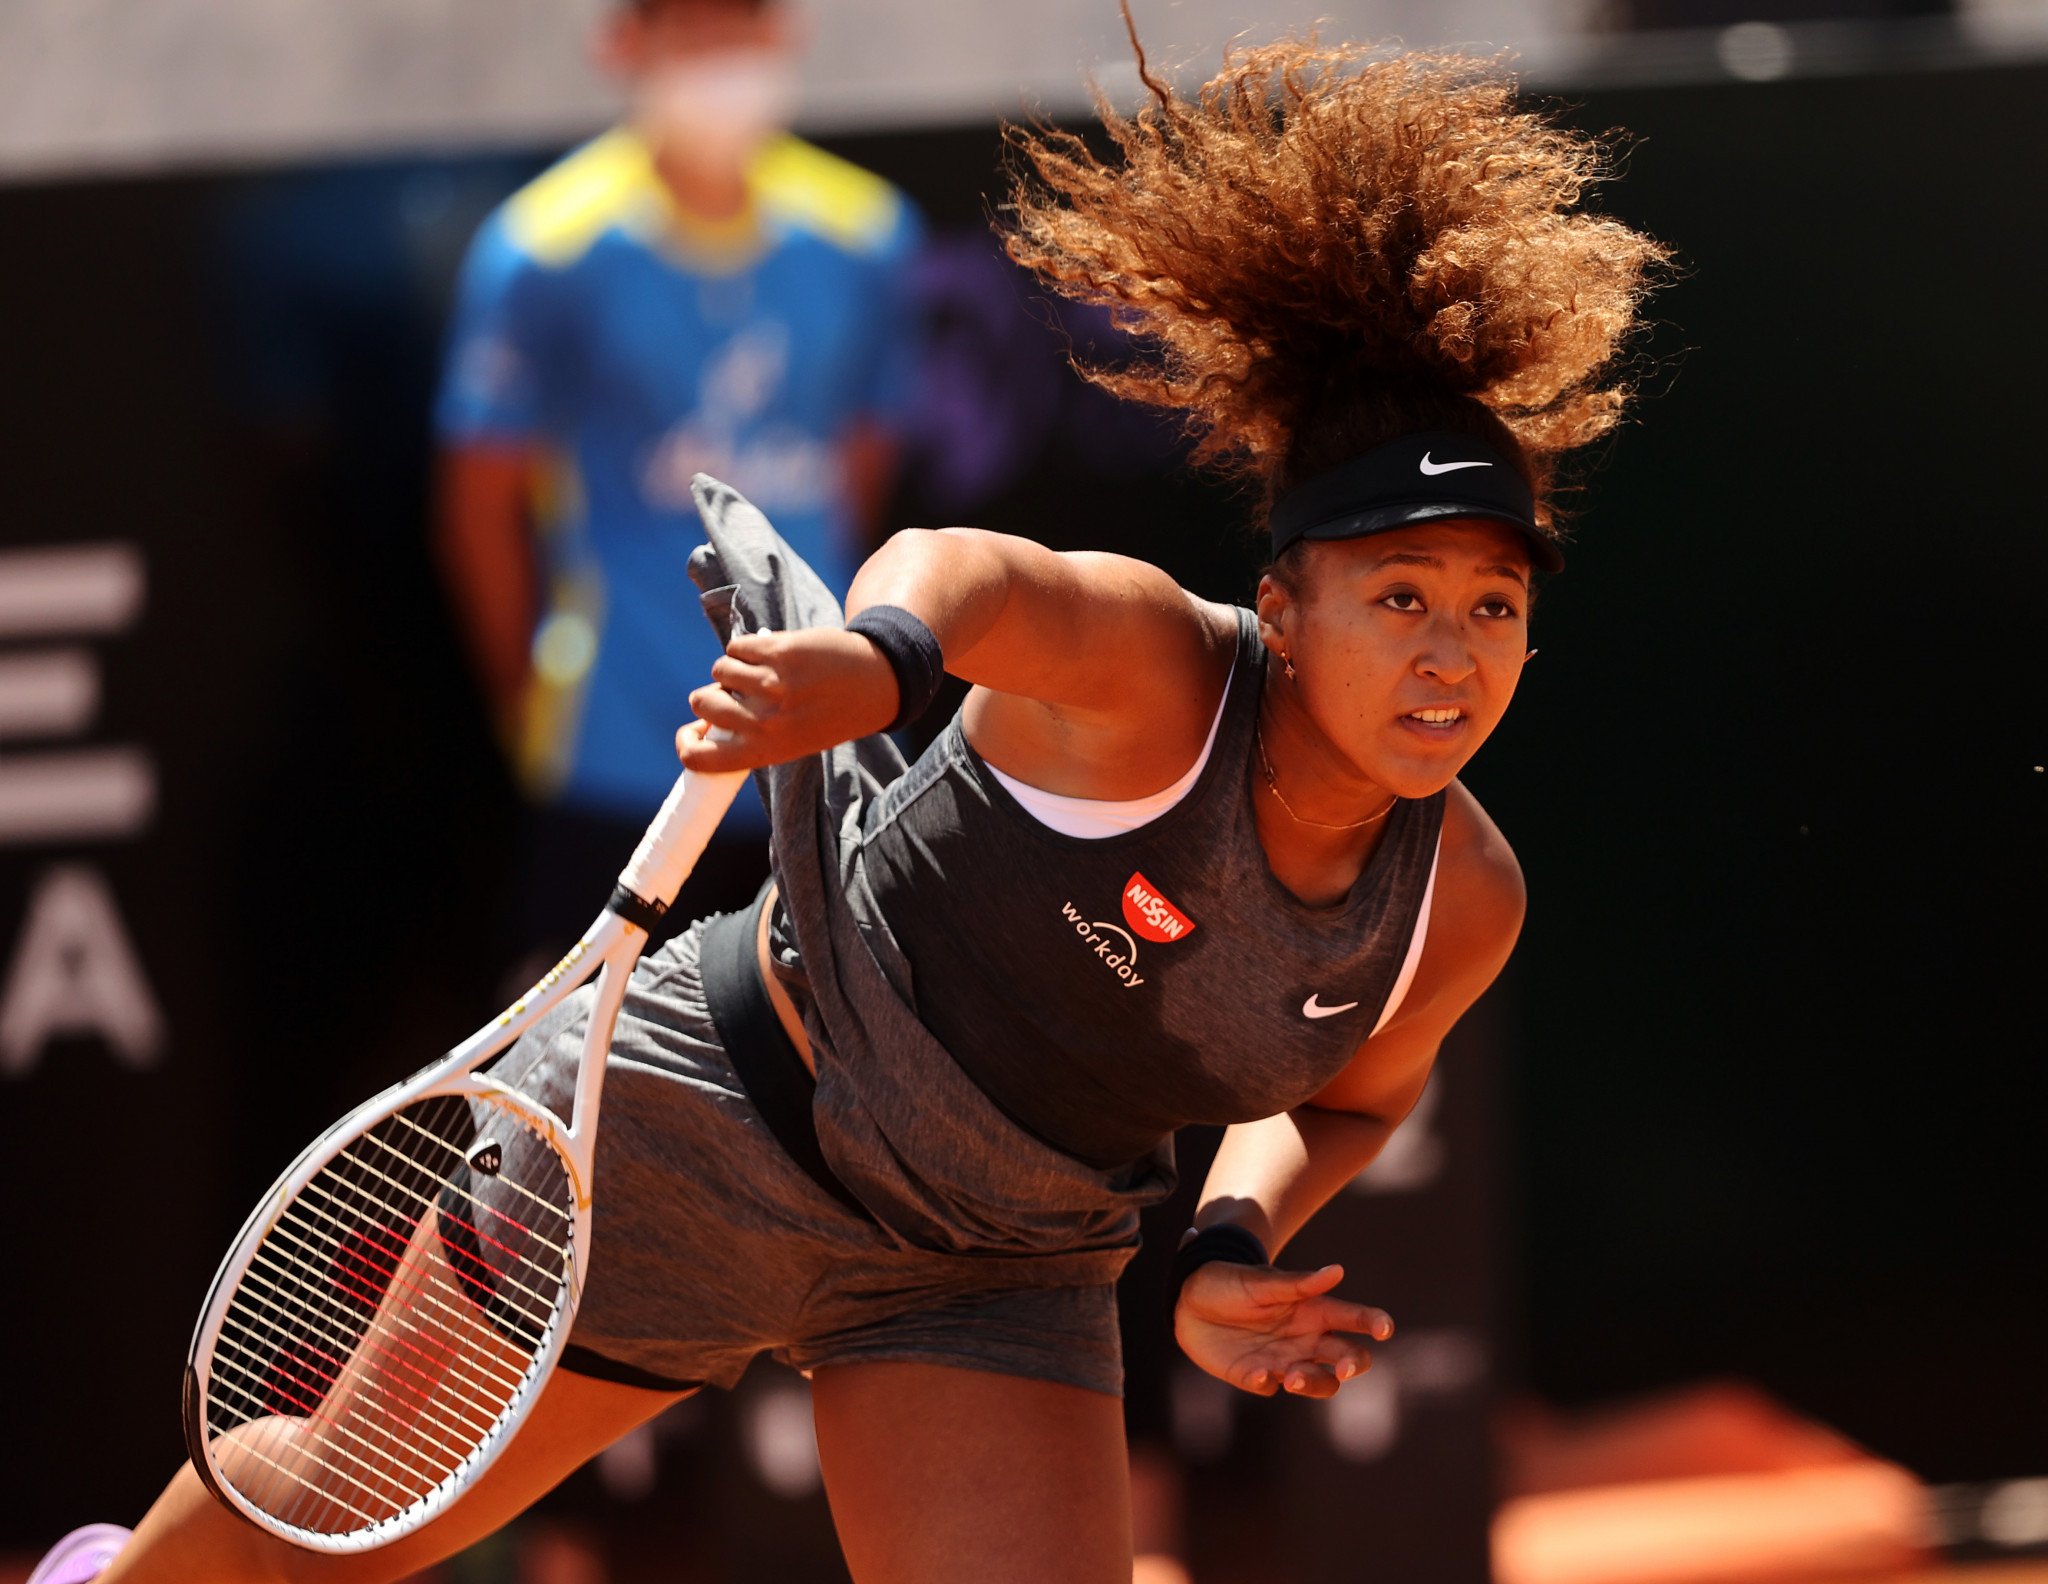 Osaka's media snub questioned ahead of French Open